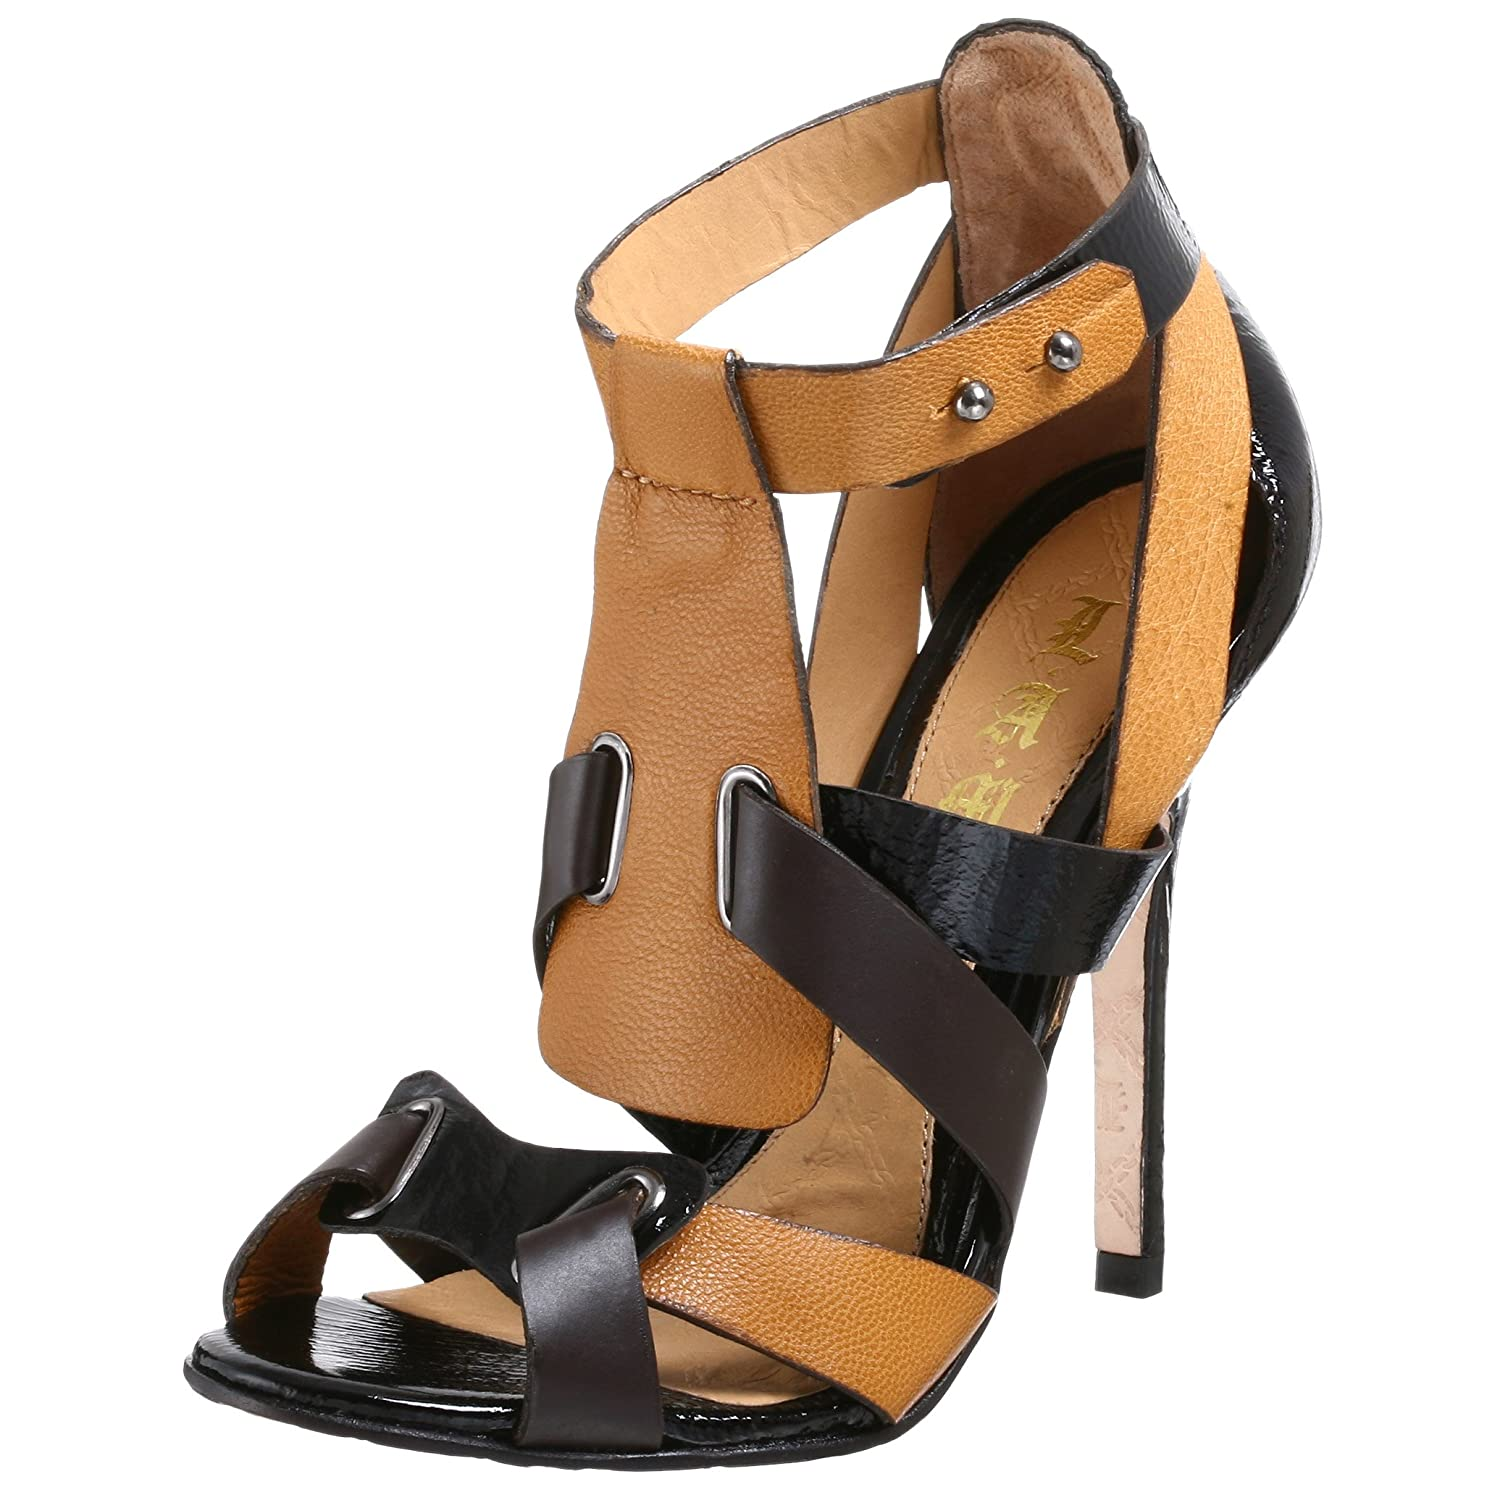 Endless.com: L.A.M.B. Women's Ely Sandal: Sandals - Free Overnight Shipping & Return Shipping